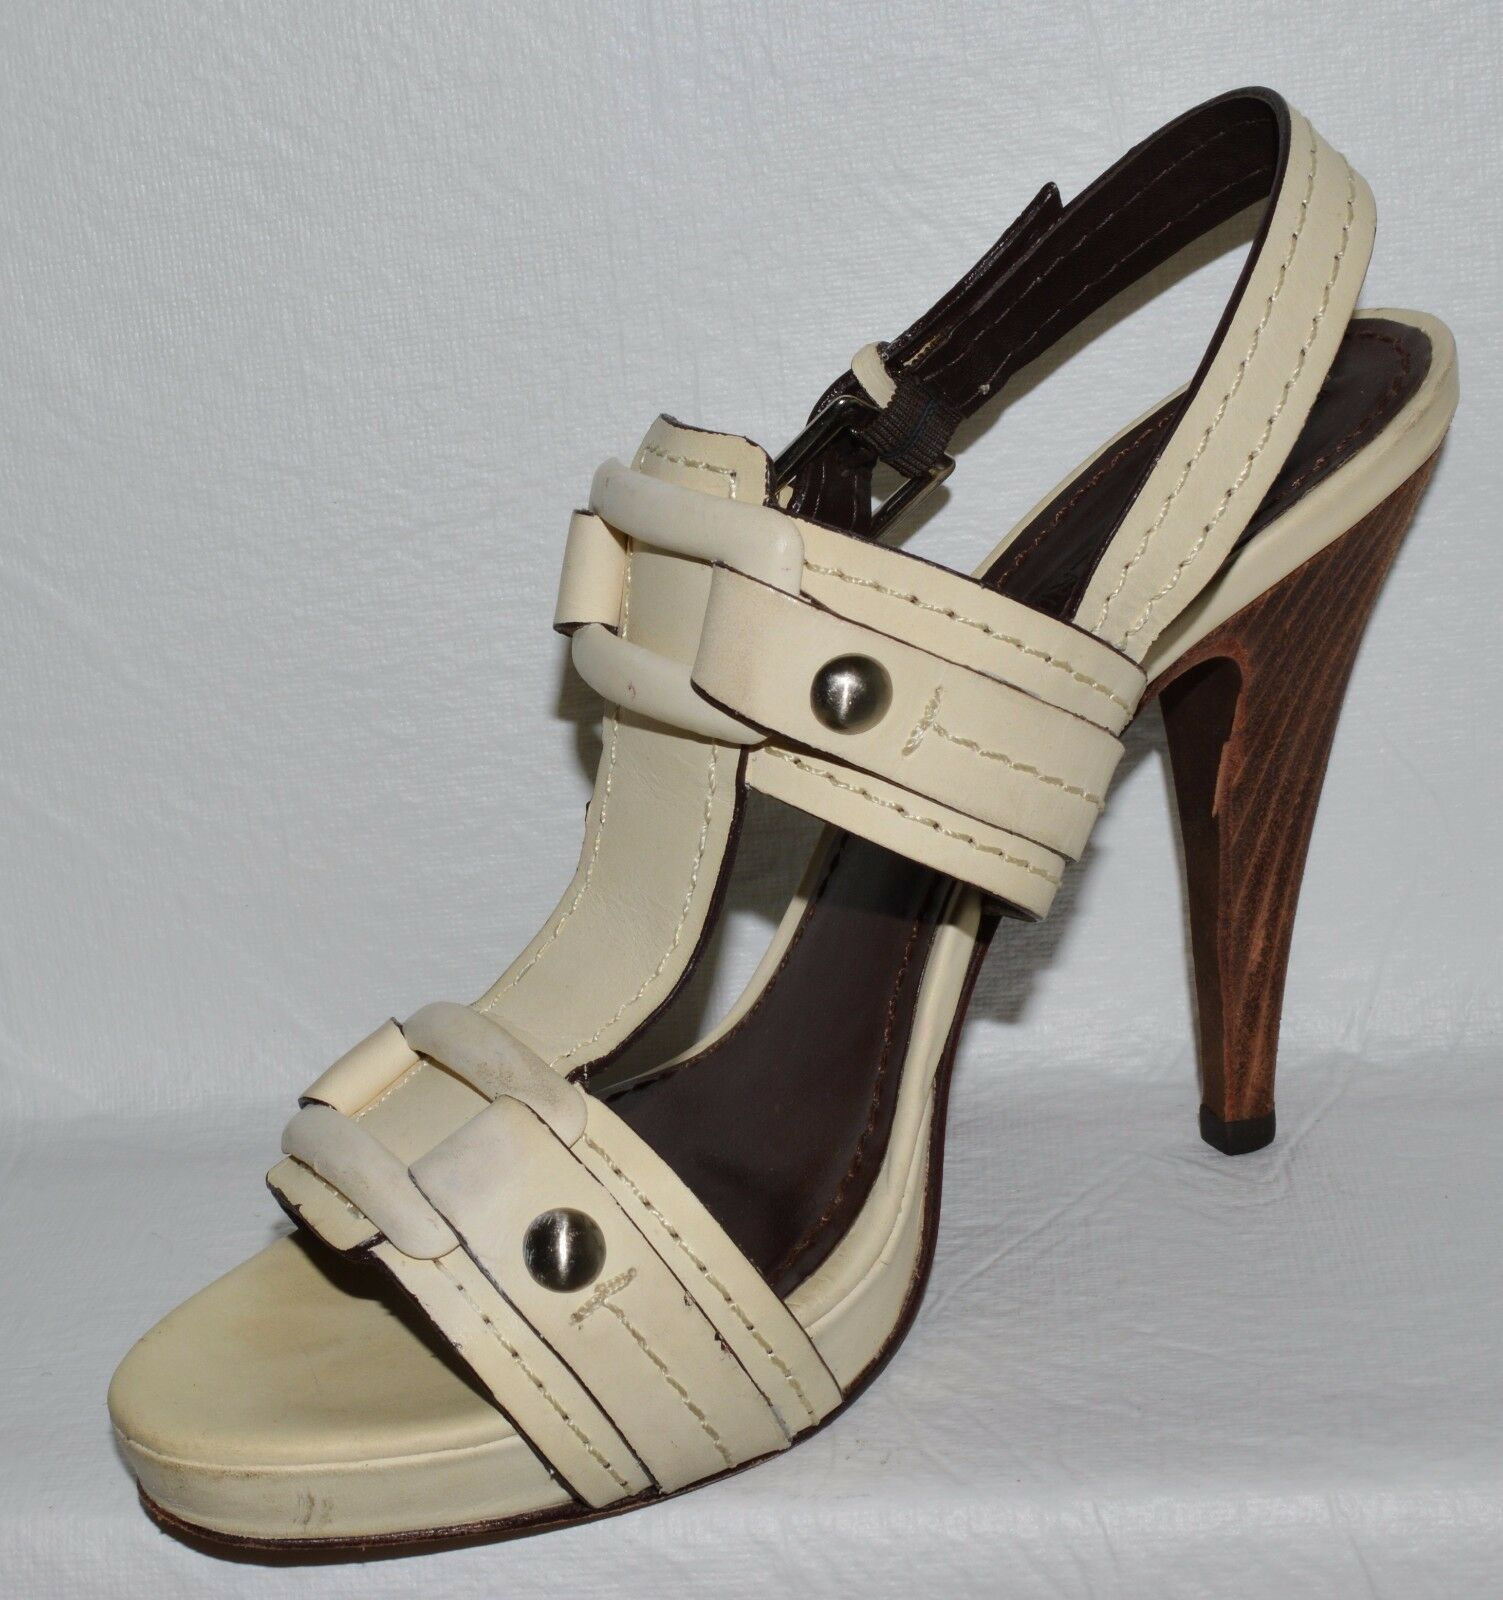 BCBG MAX AZRIA SZ 10 B OFF WHITE LEATHER PLATFORM PLATFORM PLATFORM SANDALS HEELS 45196a